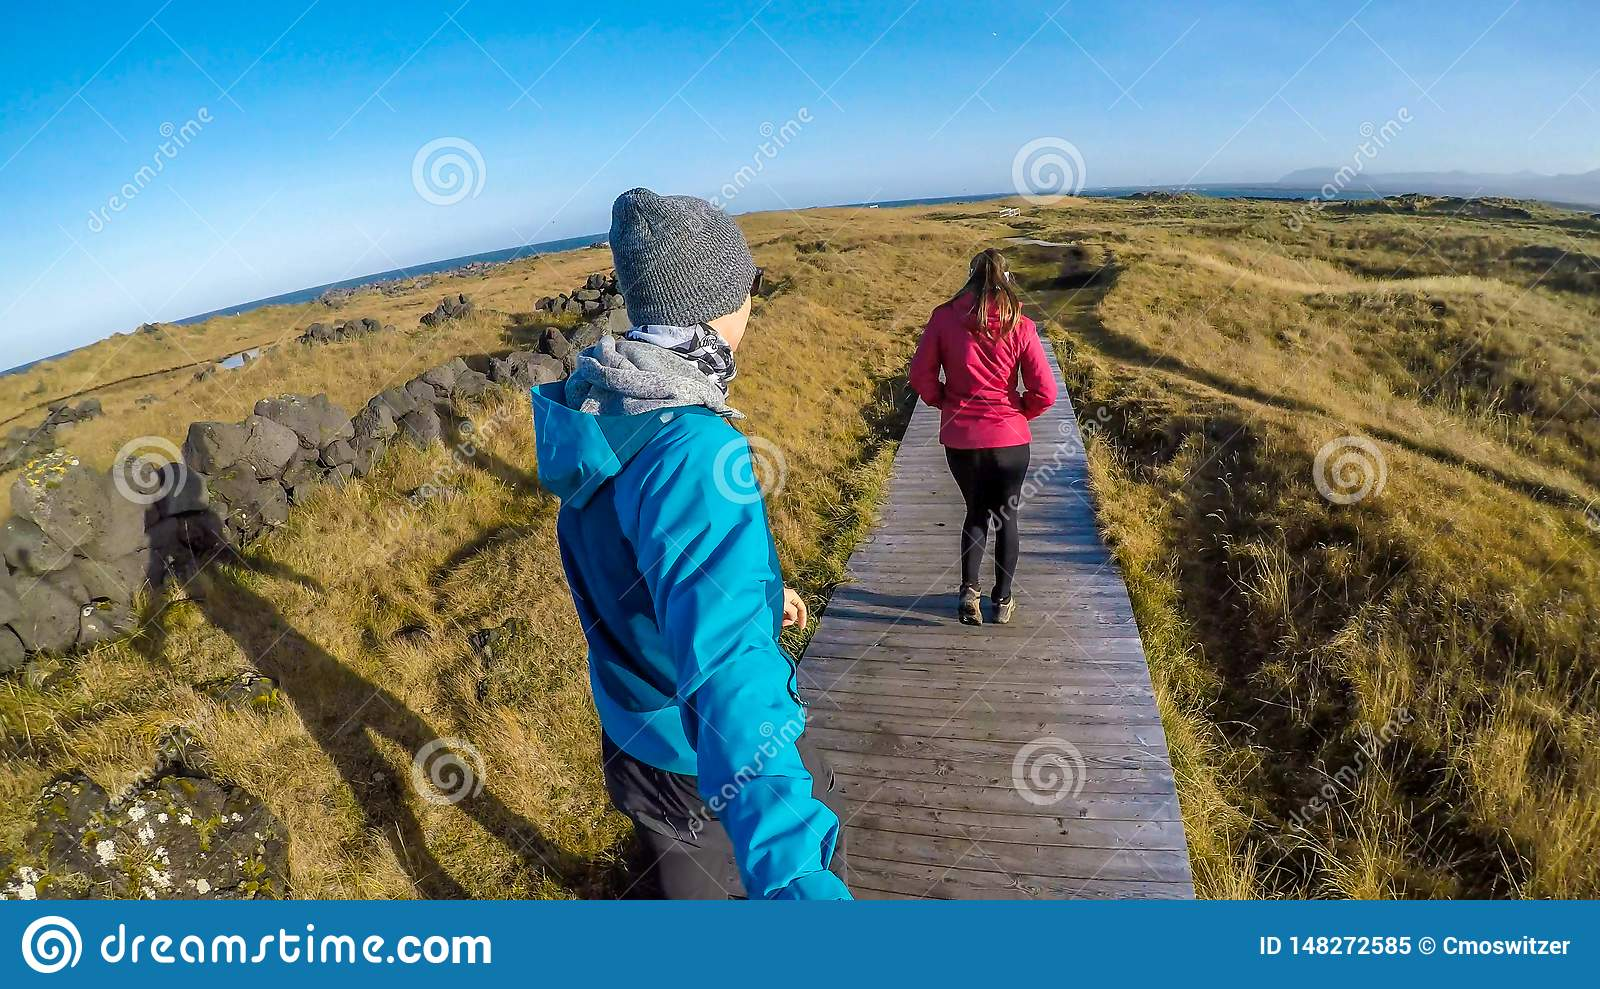 Iceland - A couple walking on a path across the grassland